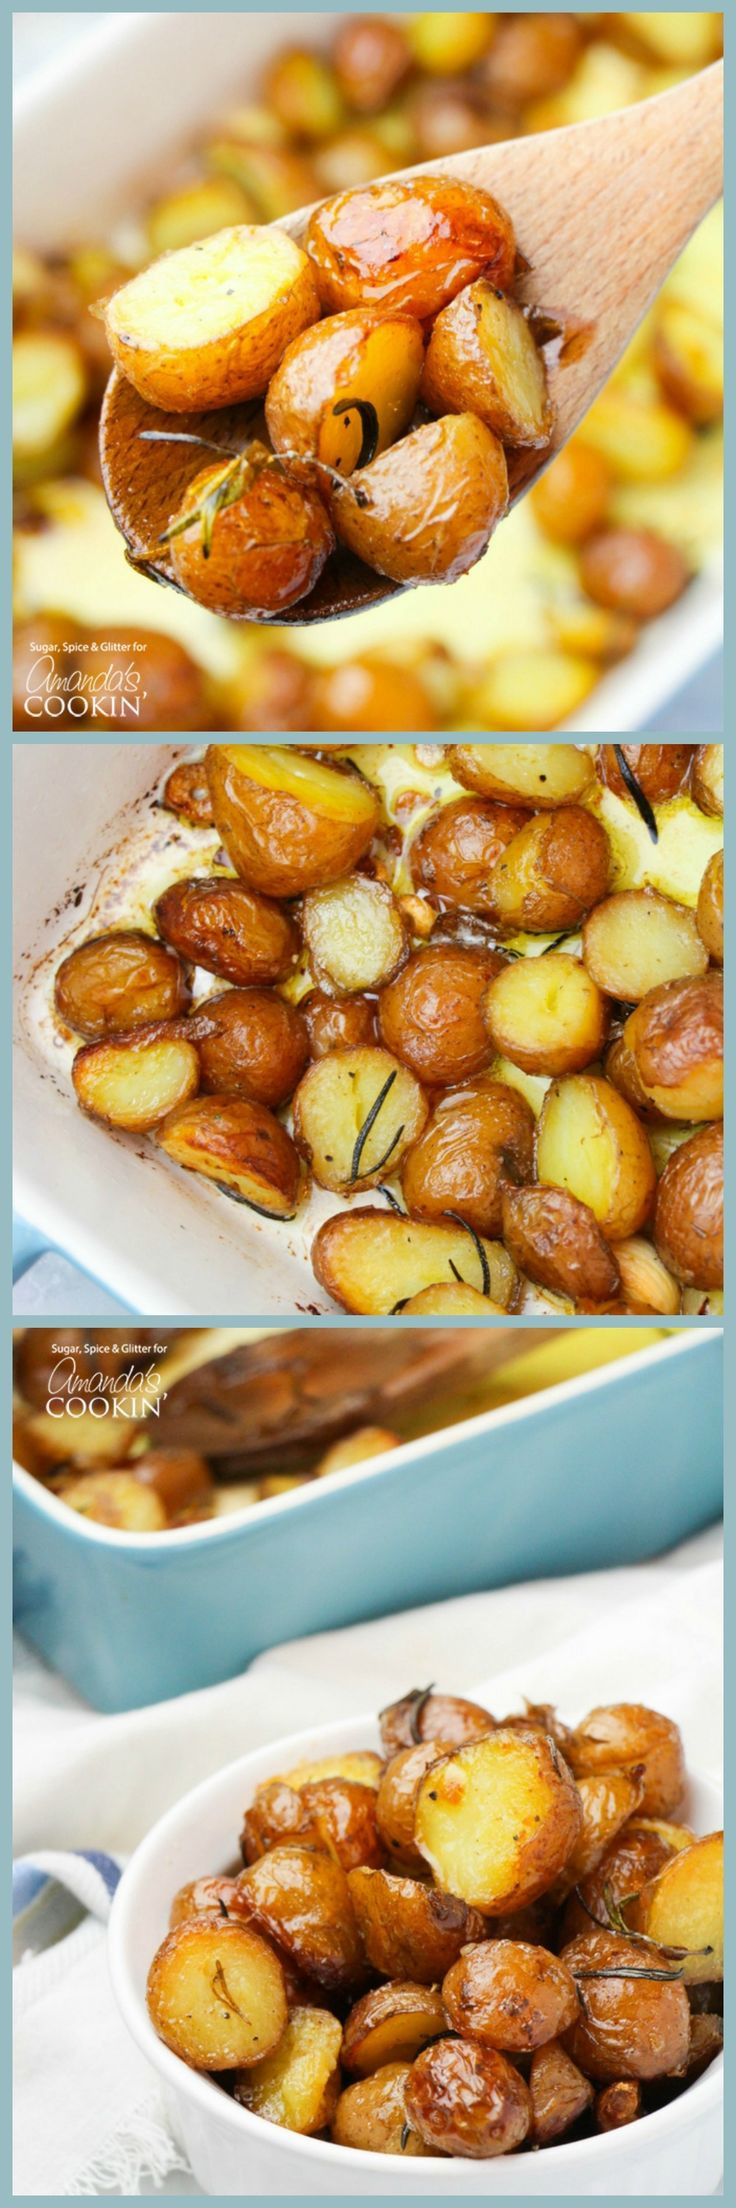 Potatoes Thanksgiving Side Dishes  Best 25 Side dish recipes ideas on Pinterest